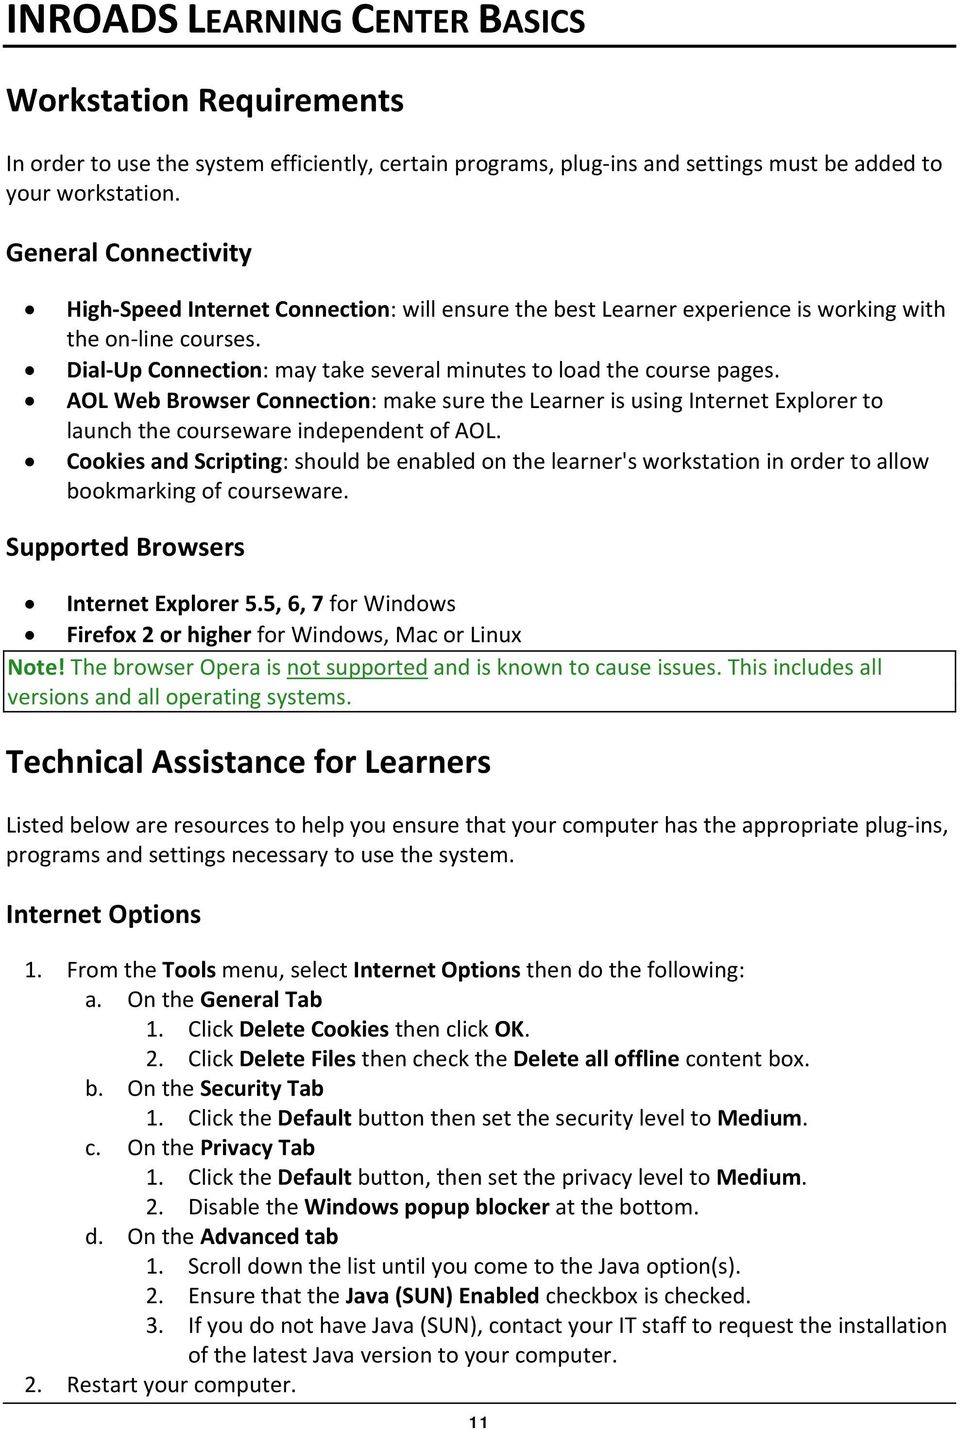 AOL Web Browser Connection: make sure the Learner is using Internet Explorer to launch the courseware independent of AOL.